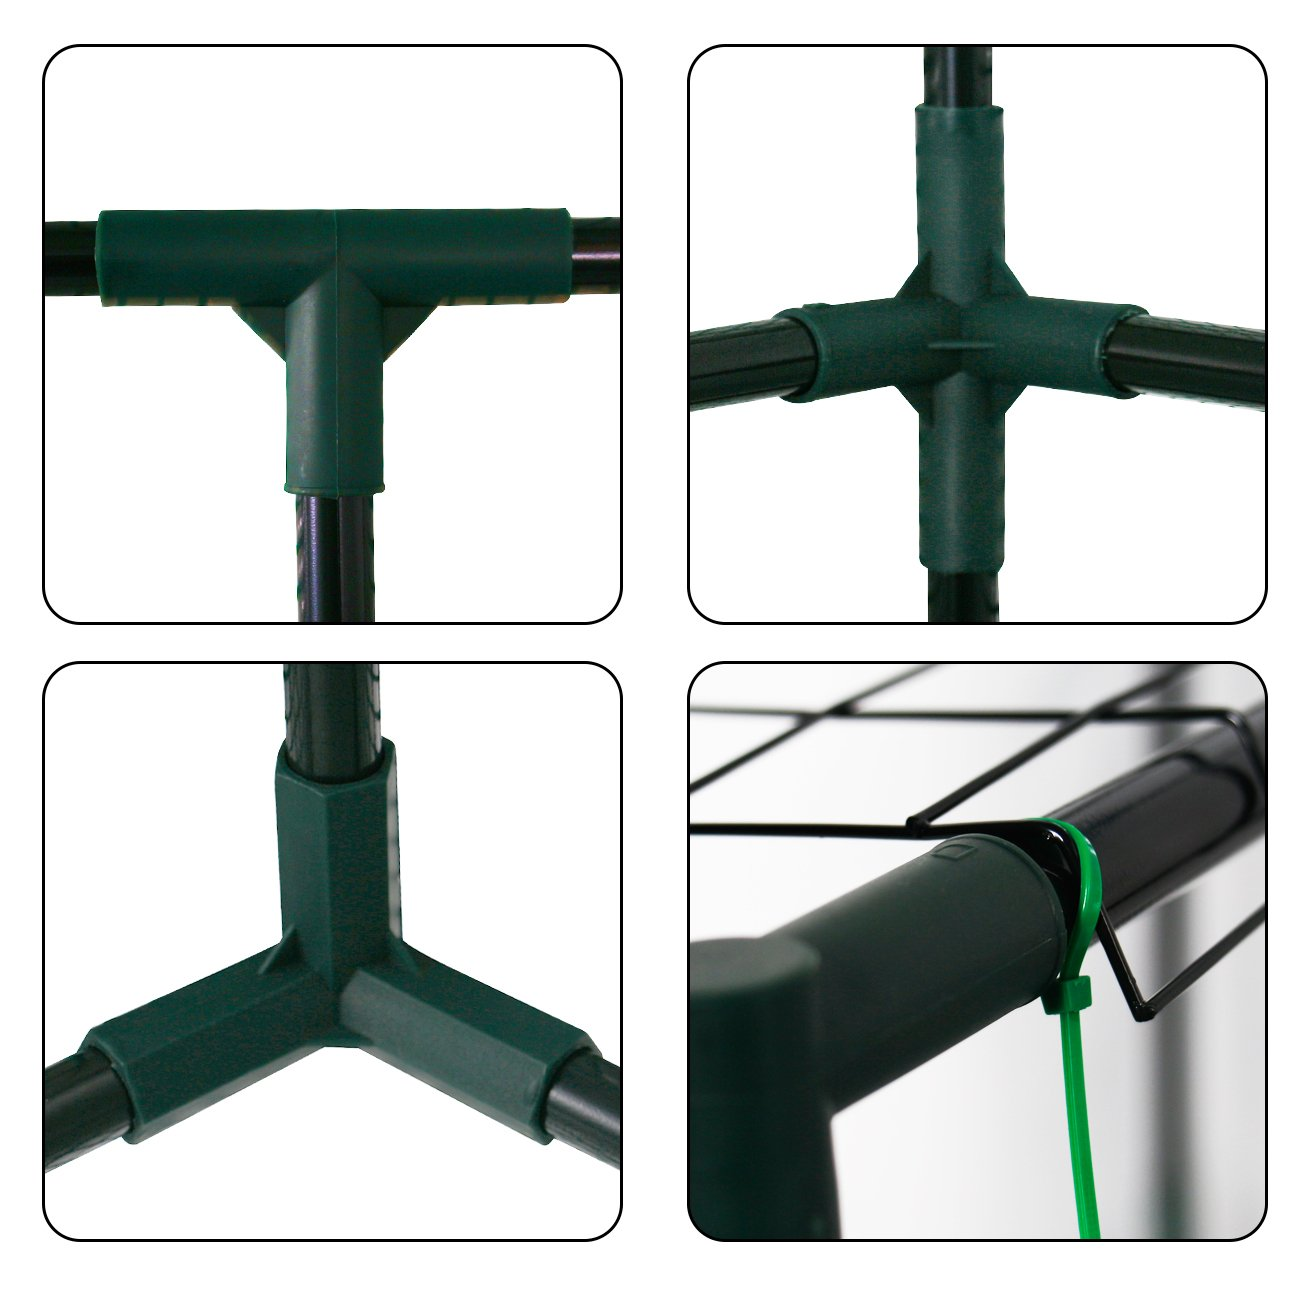 AODAILIHB Reinforced PE Net 6 Layers 8 Shelves Greenhouse Suitable for Lawn and Garden Steel Structure Assembly, 8 Fixed Buttons 4 Floor Fasteners, H x L x W:76.77 x 56.29 x 56.29 inch (02) by AODAILIHB (Image #6)